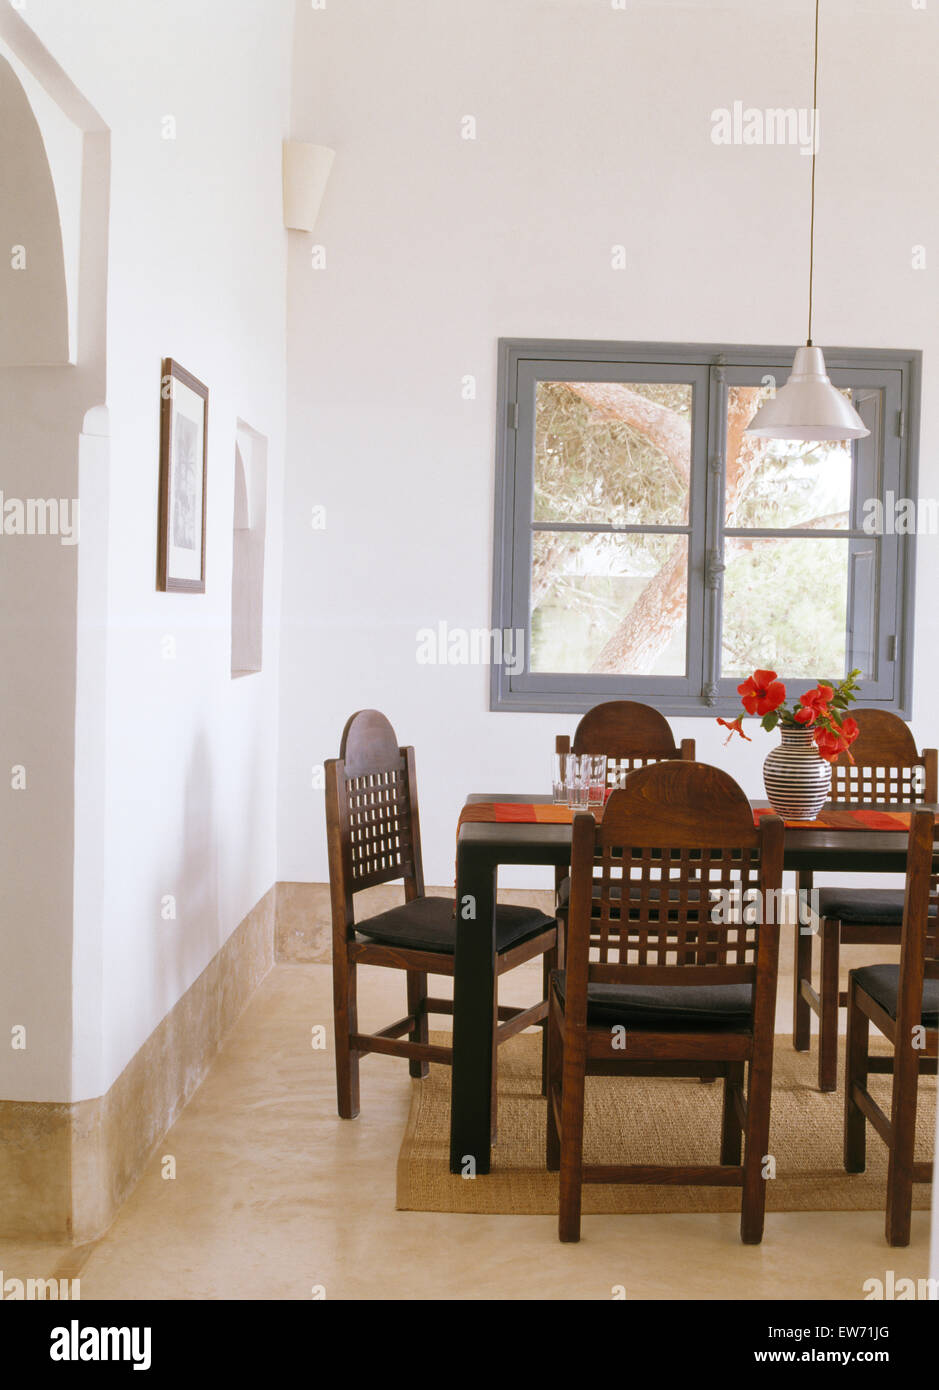 Moroccan Dining Room Stock Photos & Moroccan Dining Room Stock ...